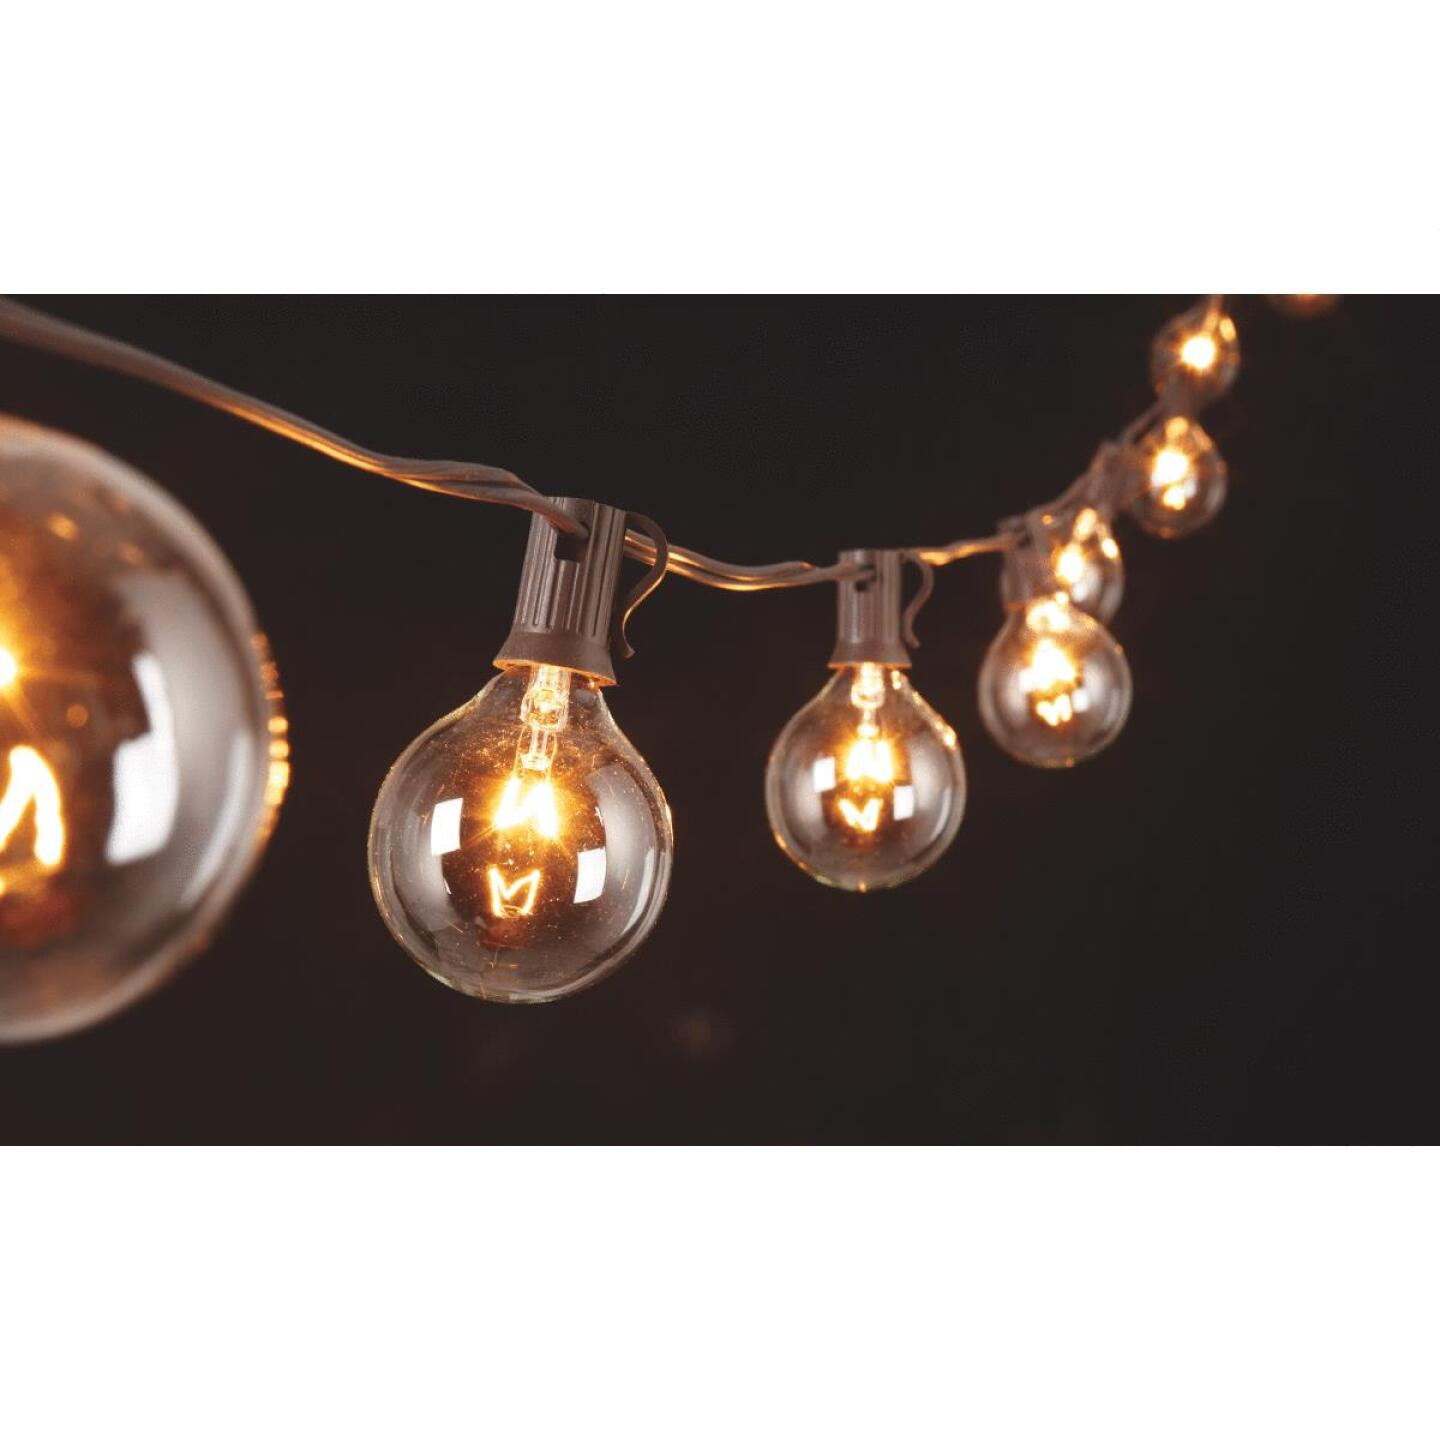 Gerson 10 Ft. 10-Light Clear Globe String Lights Image 3